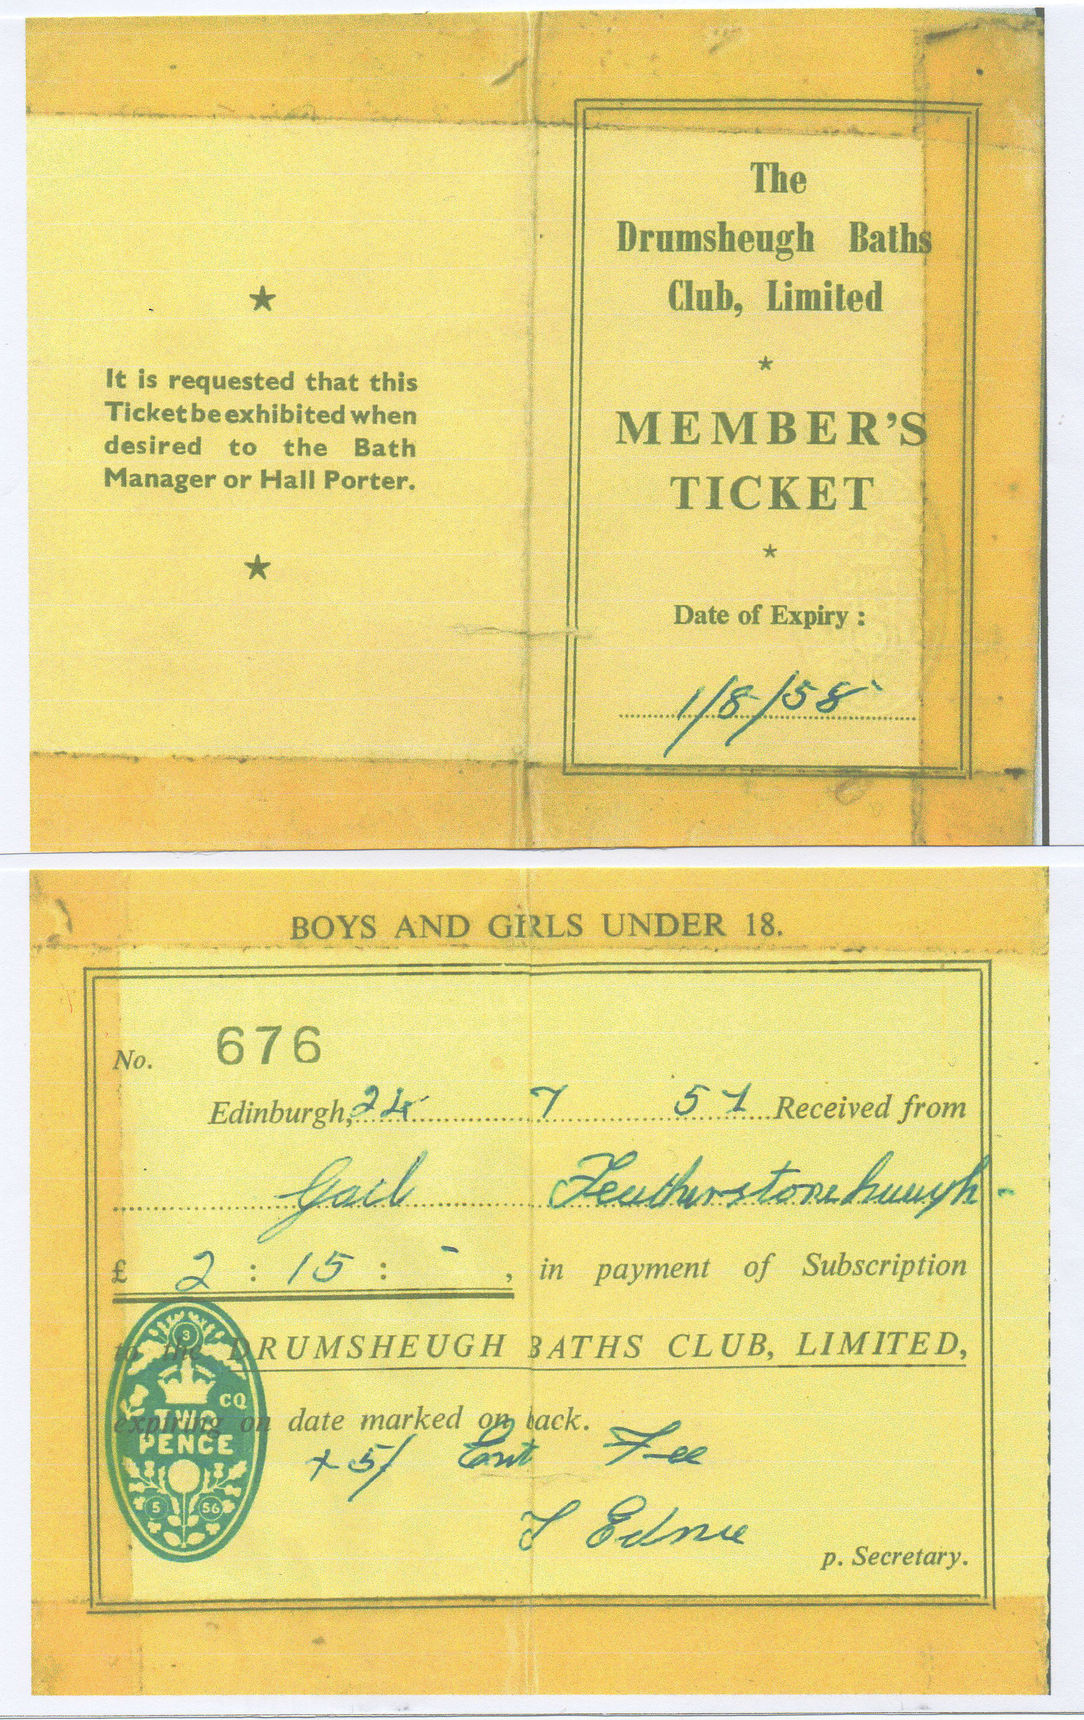 1957 - My Dad gave me money £2 and 15 shillings for a year's Junior Subscription to Drumsheugh Baths.